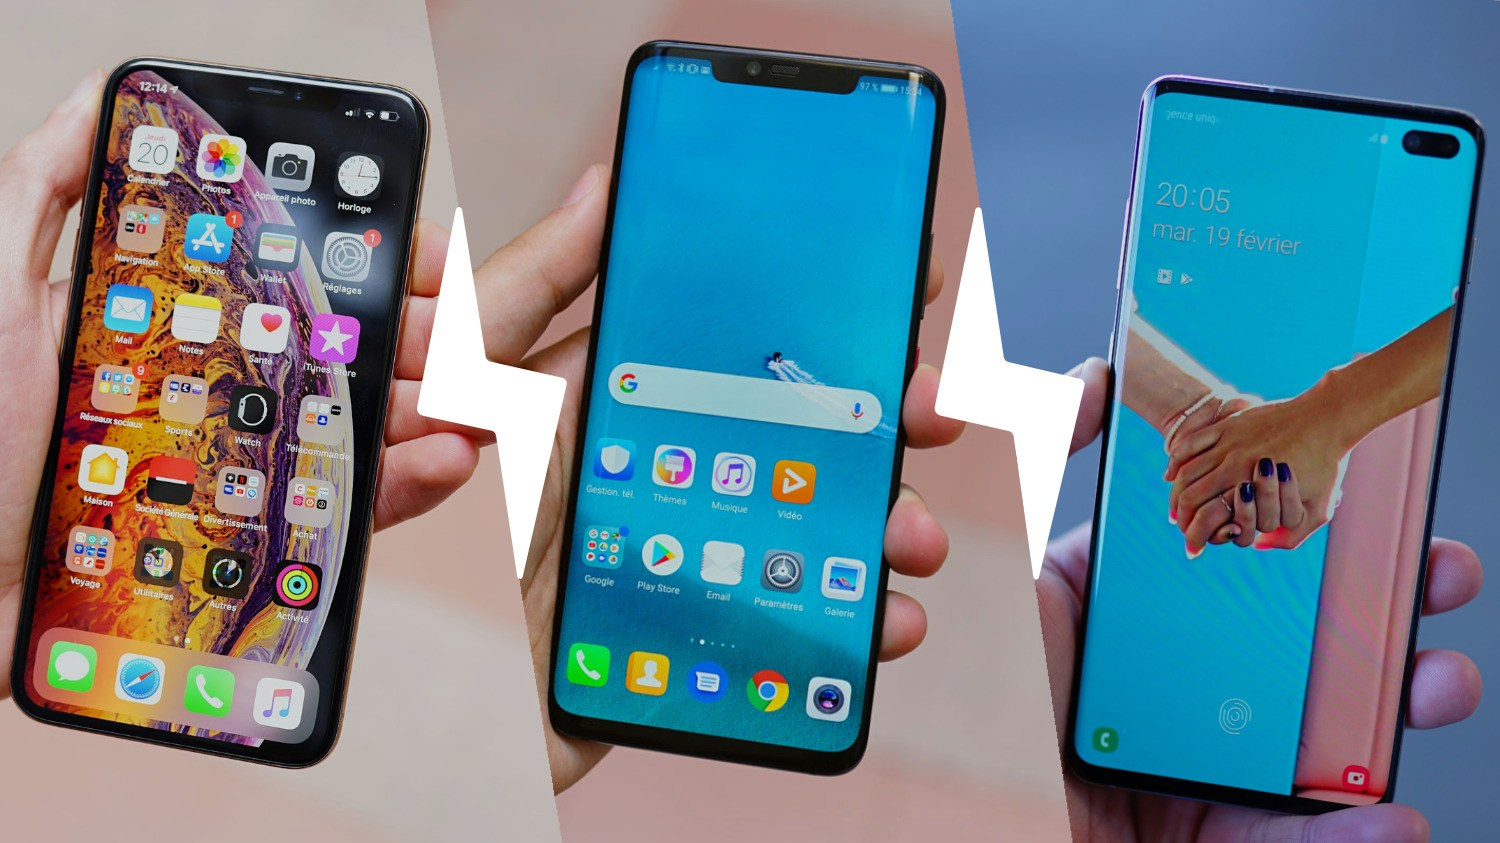 Samsung Galaxy S10+, Huawei Mate 20 Pro et Apple iPhone XS Max : quel smartphone choisir ?